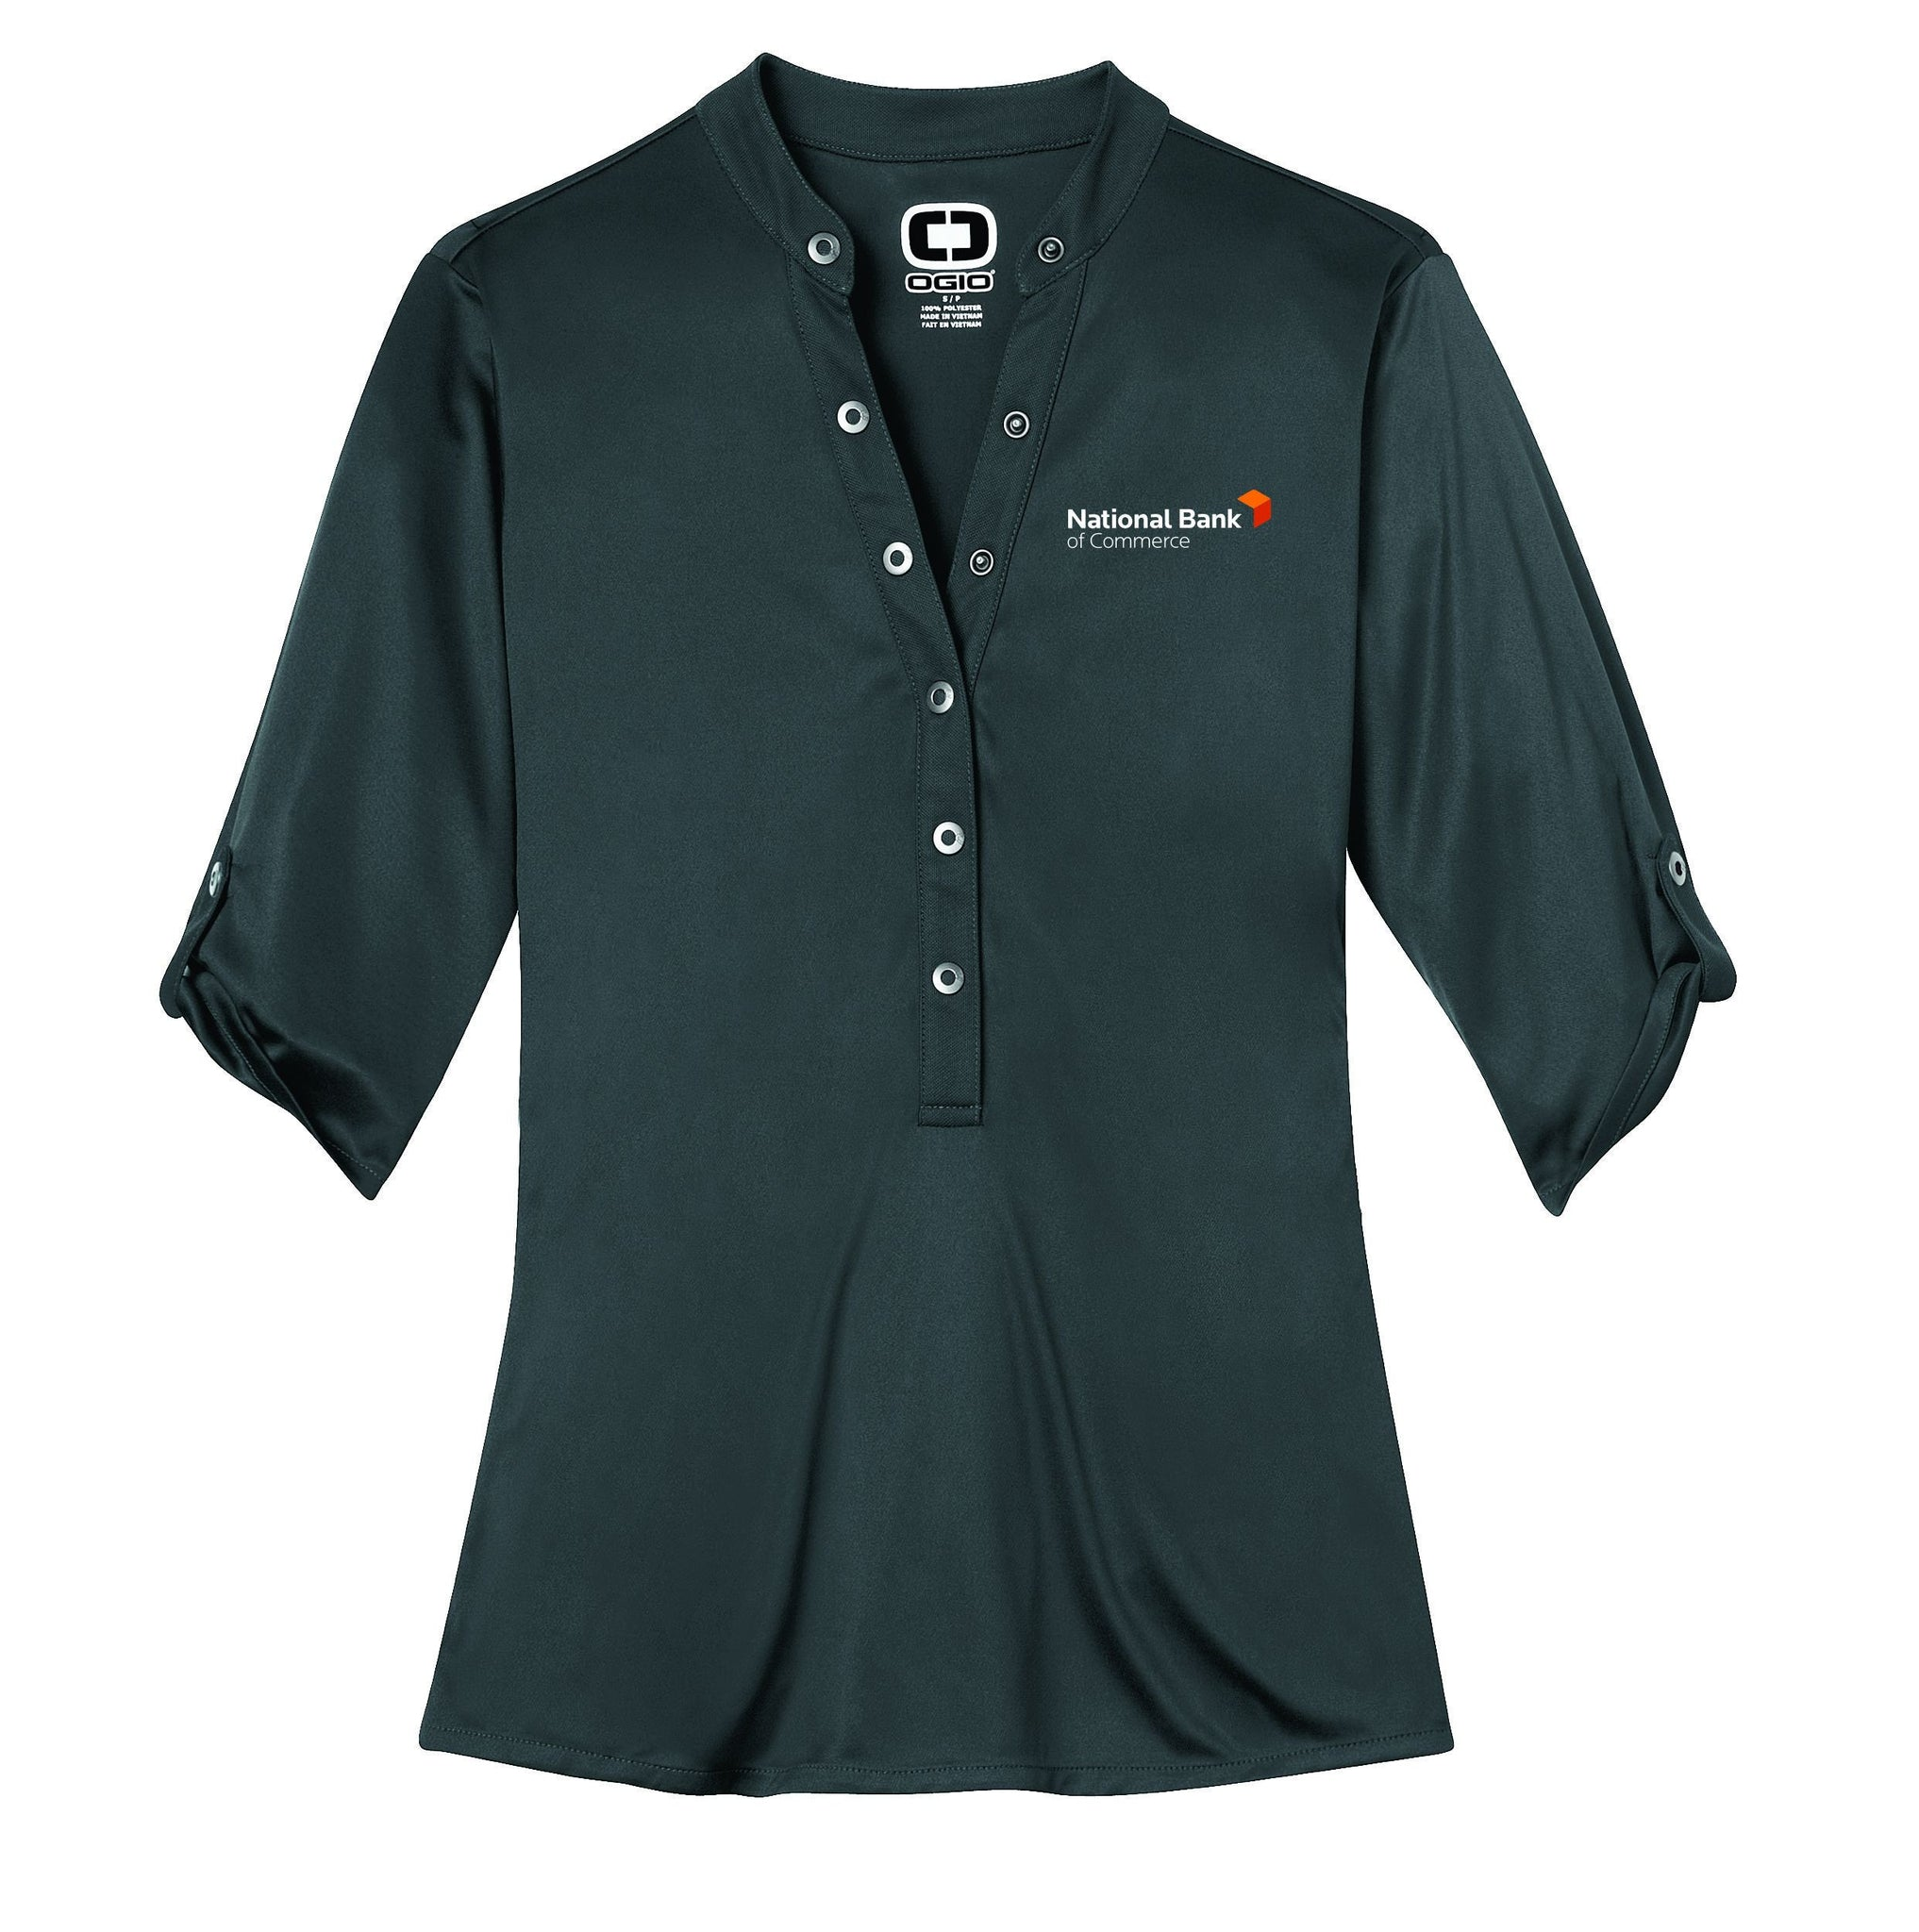 NBC POLO LOG111 OGIO® - Crush Henley with embroidered logo